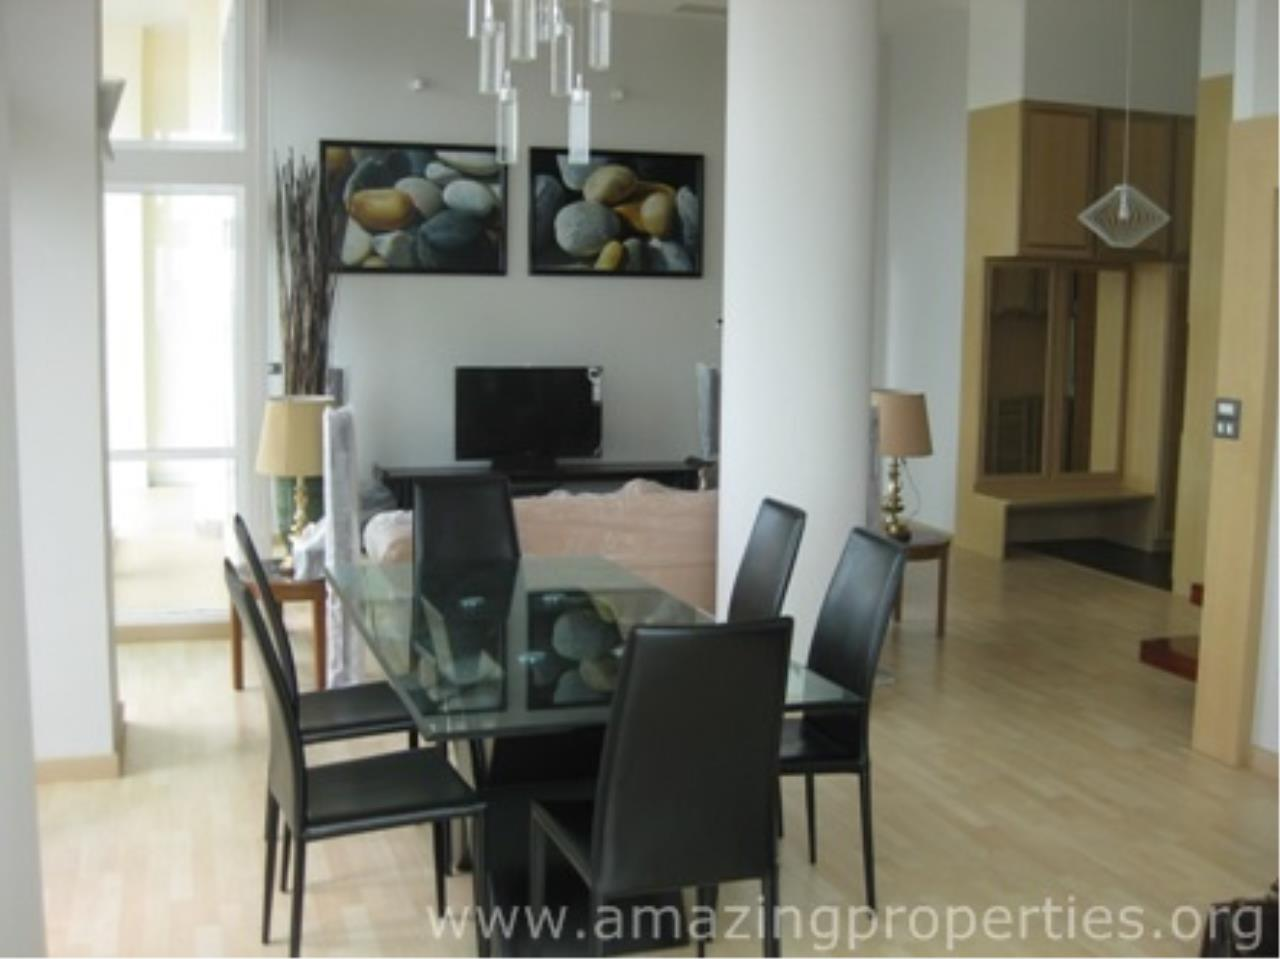 Amazing Properties Agency's 3 bedrooms Apartment for rent 10